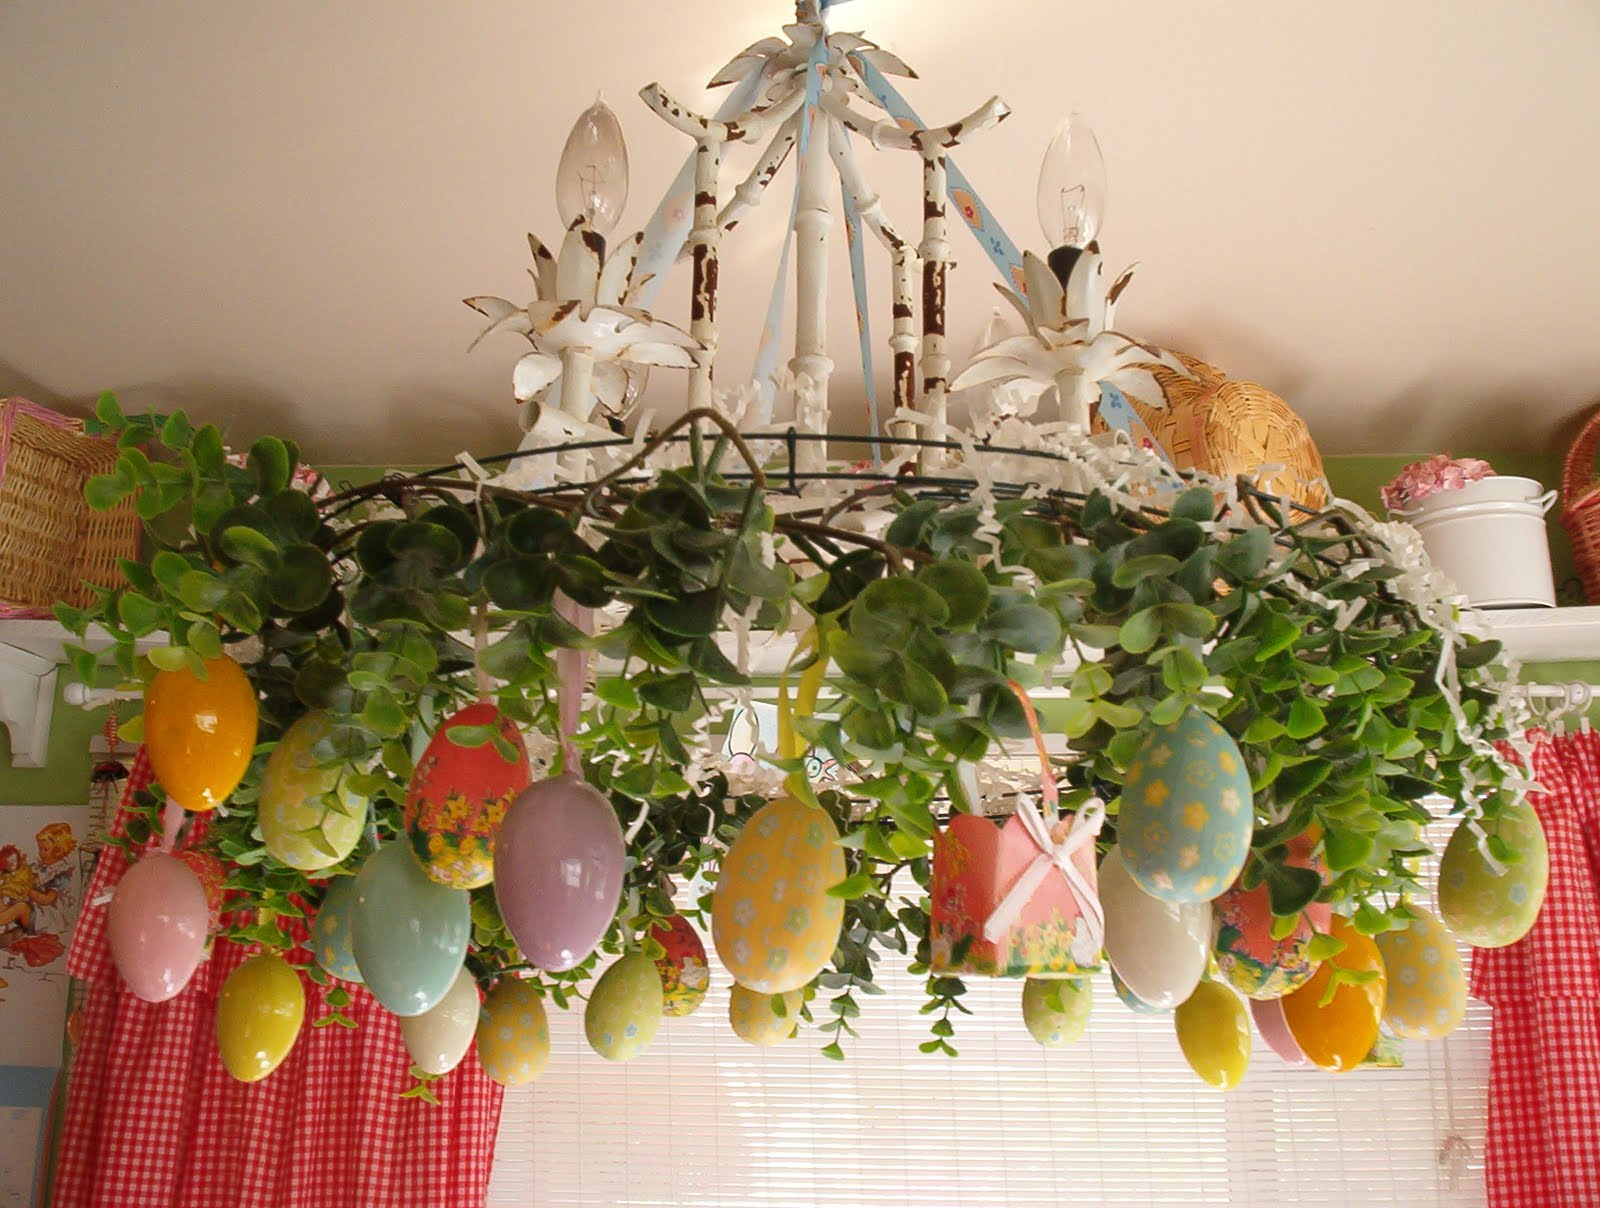 Easter decorations 2017 grasscloth wallpaper for Easter decorations ideas for the home